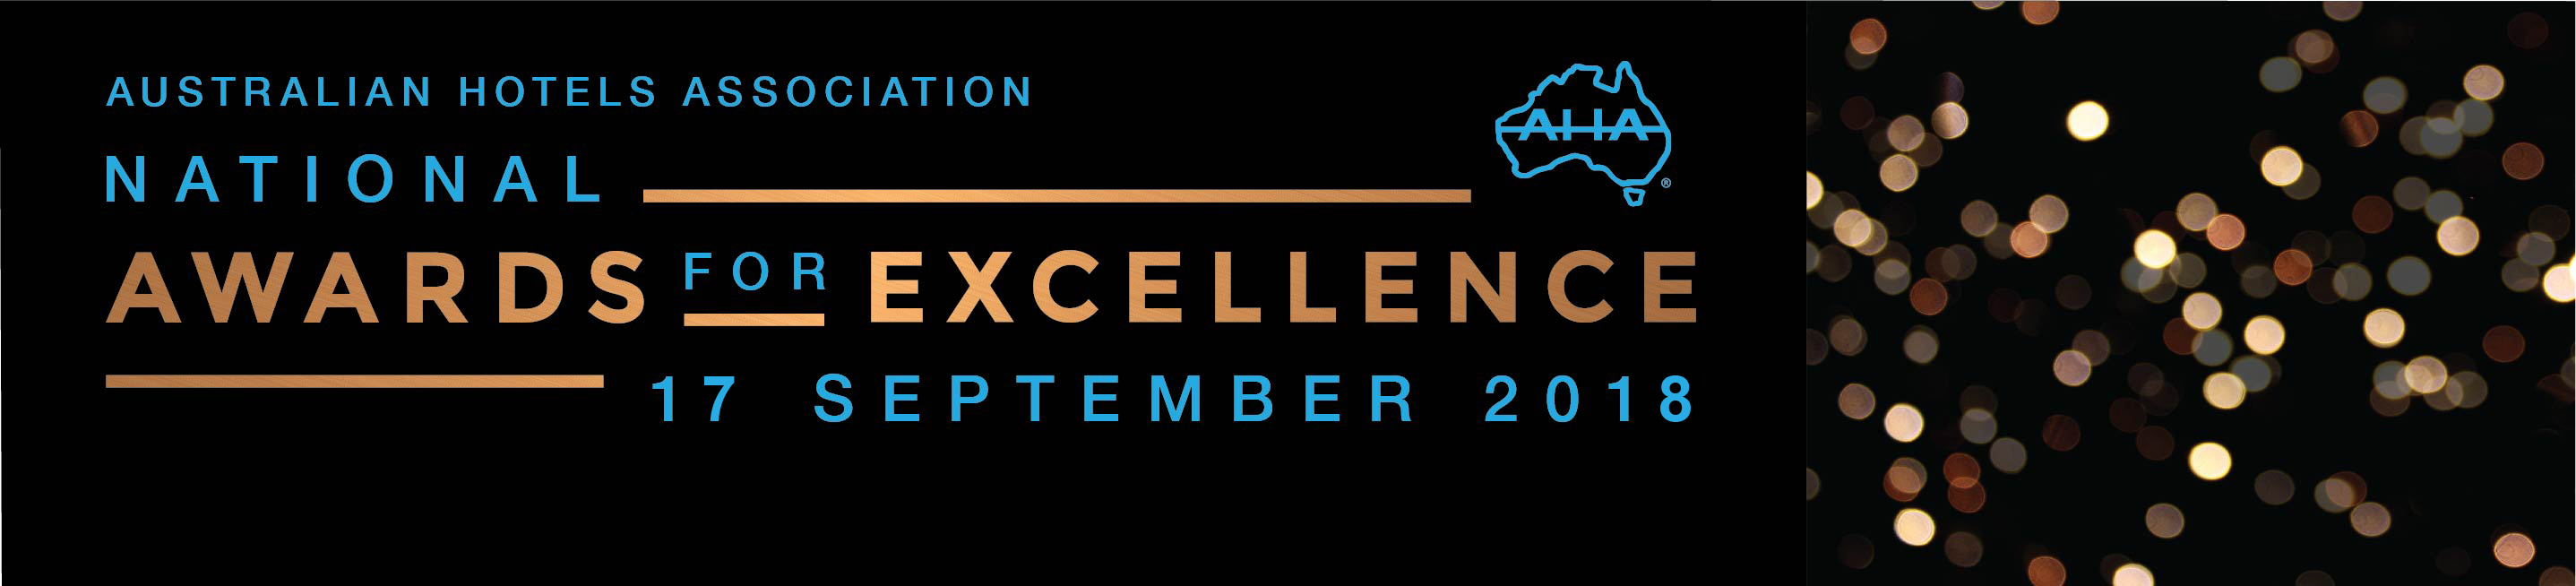 2018 AHA National Awards for Excellence